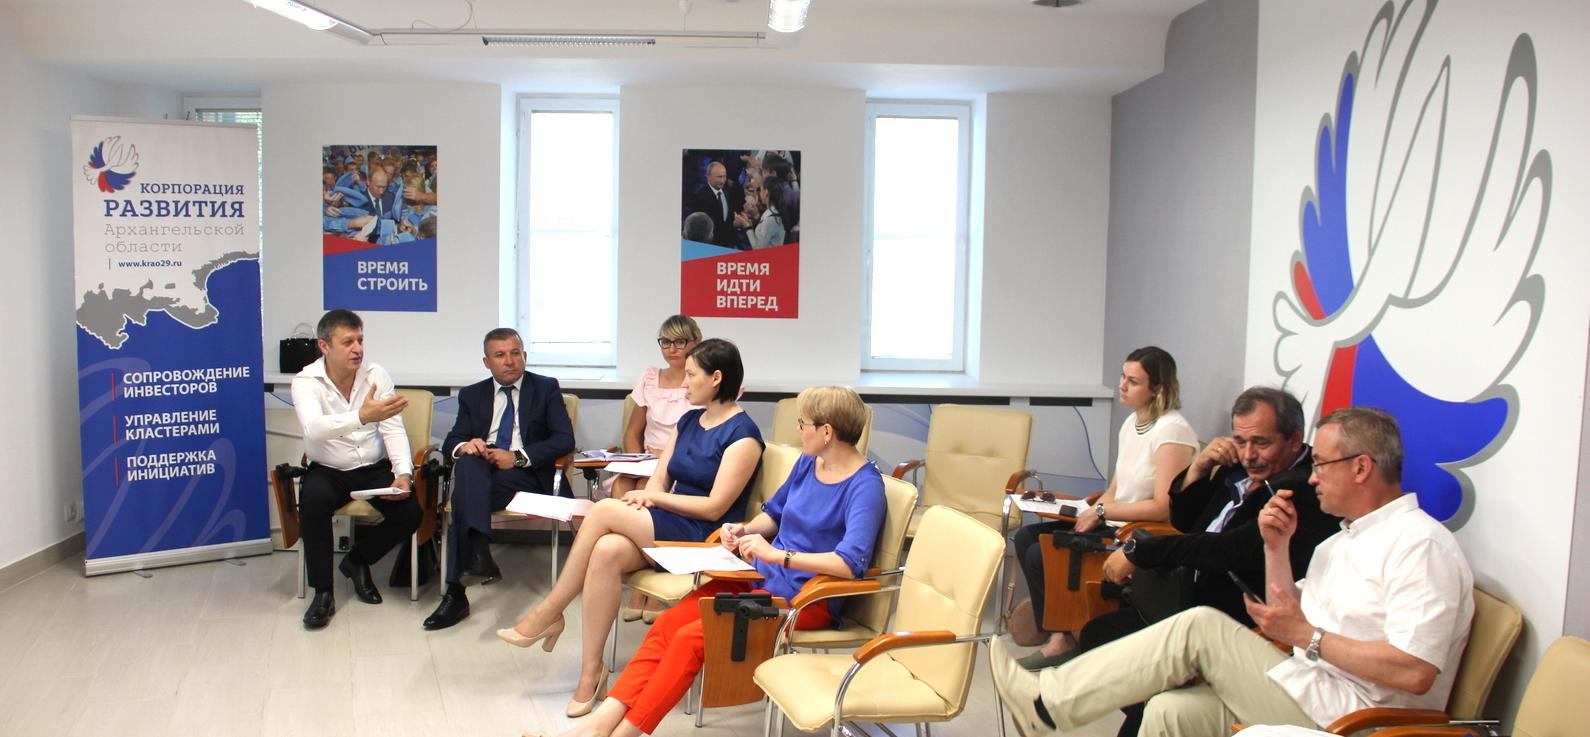 POMORIE ORGANIZATIONS ARE INVITED TO INFORMATION TOUR ON ARMENIA'S HEALTH SITES